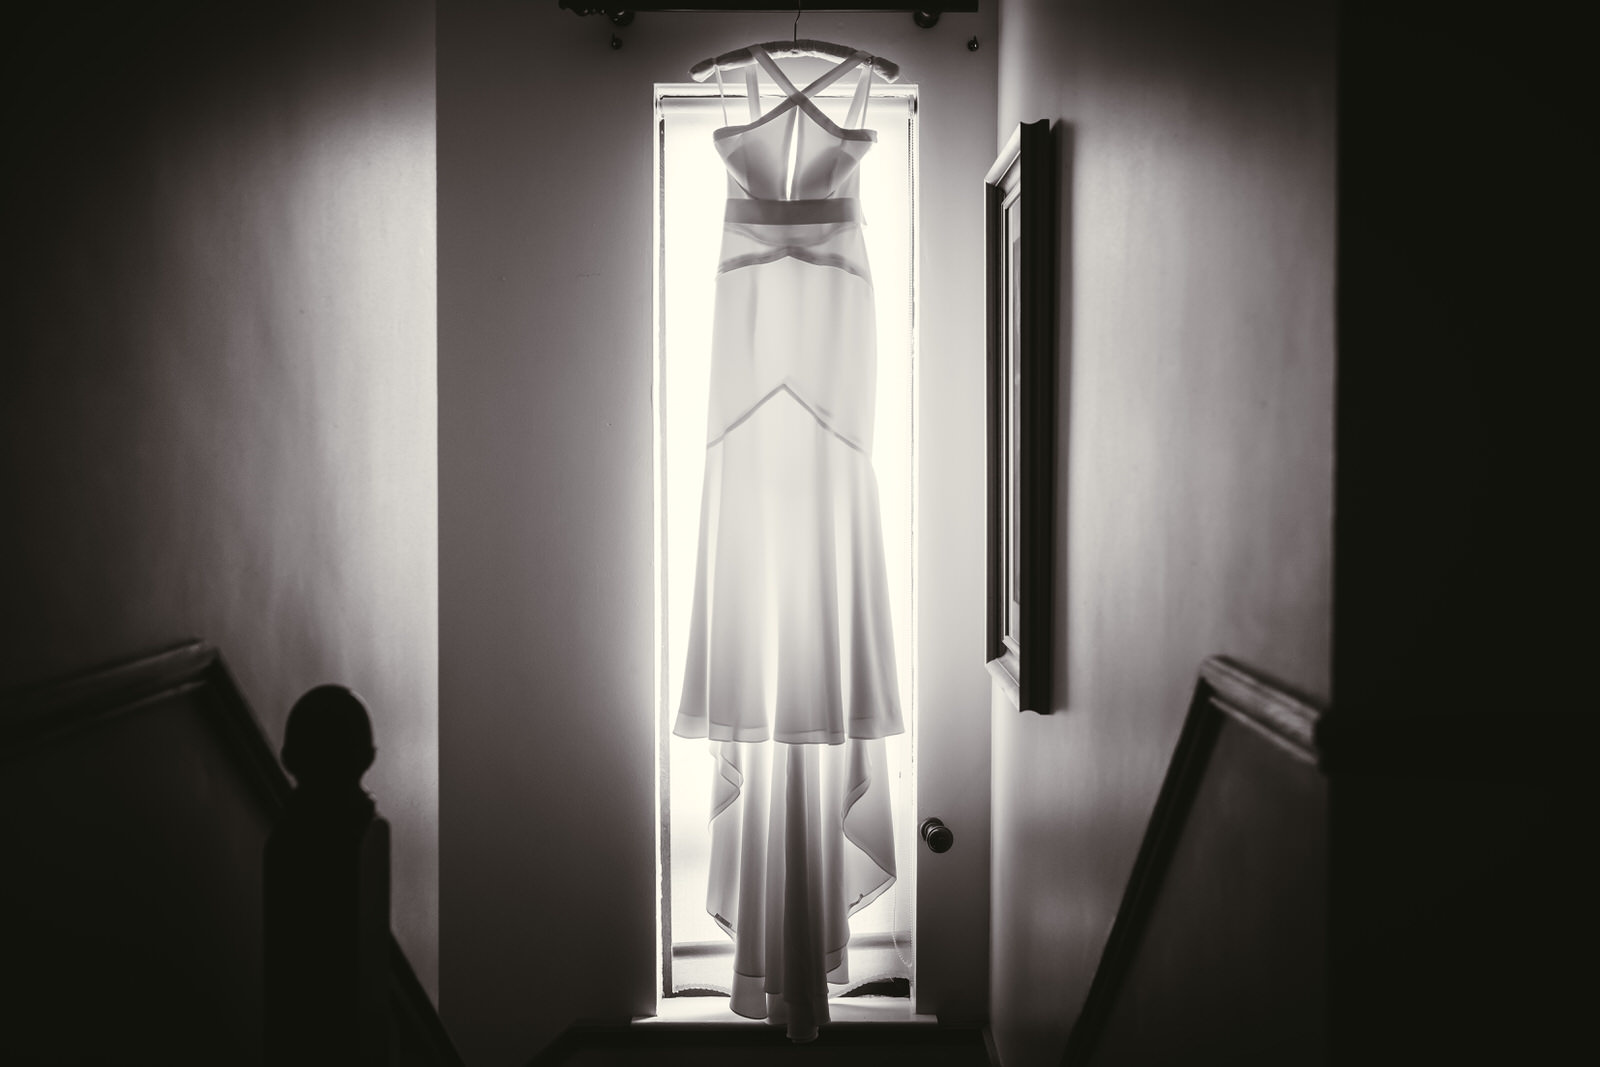 The Wedding Dress in Black and White silhouetted against the window